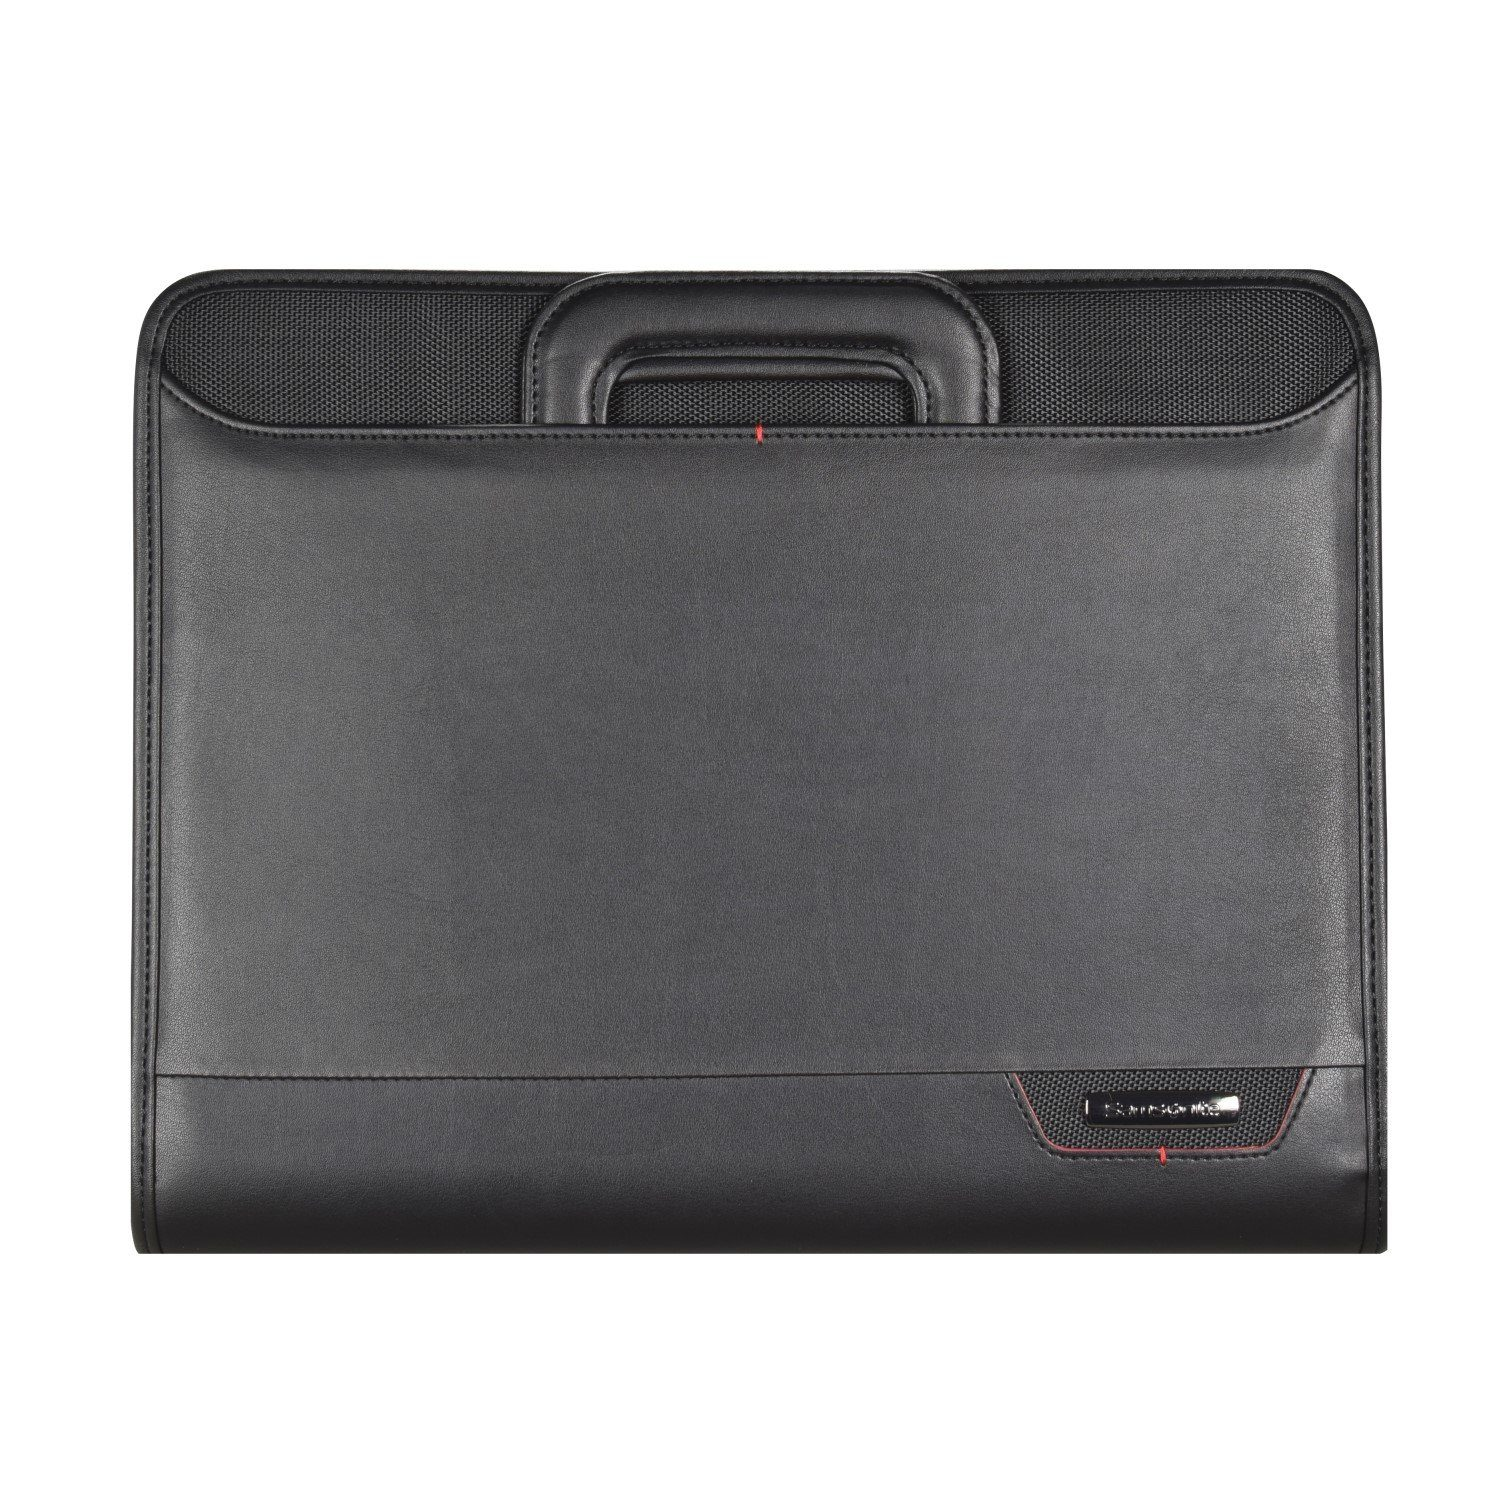 Samsonite Samsonite Stationery Pro-DLX4 Schreibmappe 29 cm